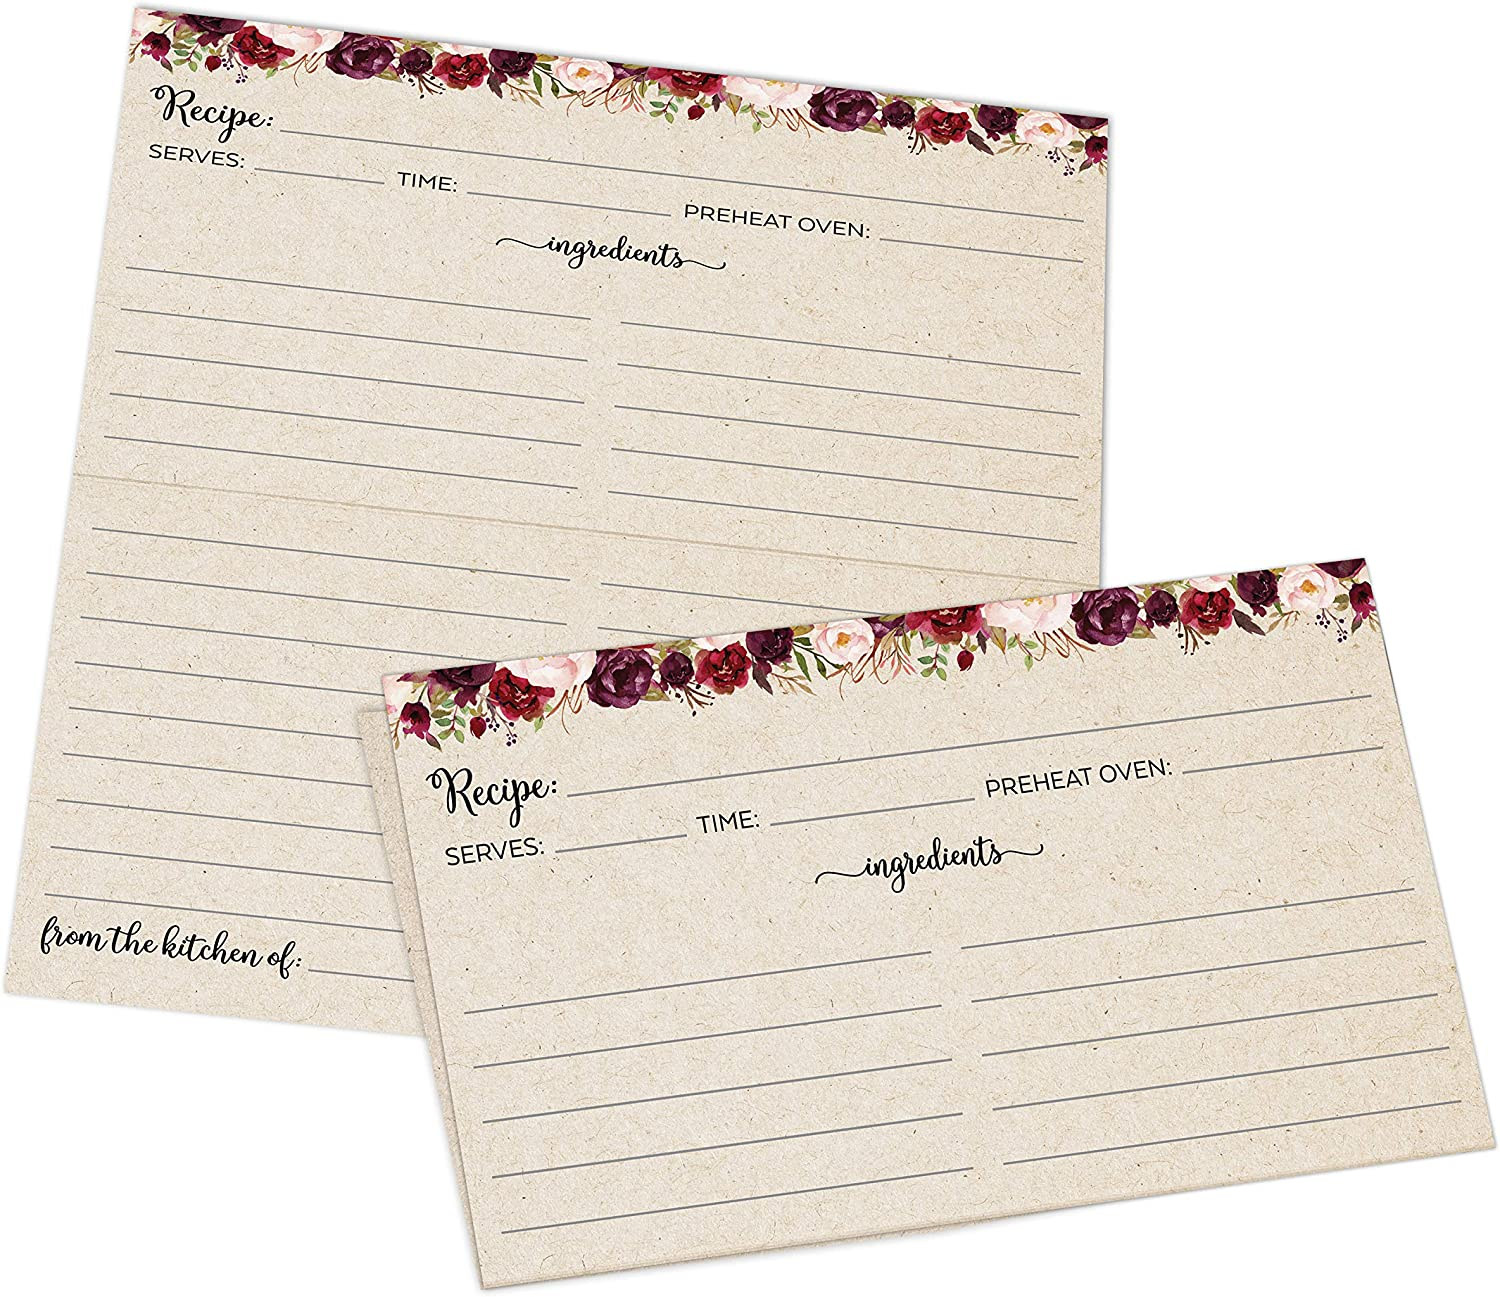 321Done Folding Recipe Cards (Set of 50) Rustic Kraft Tan Floral Roses, From the Kitchen Of - Folds to 3x5 from 6x5 - Retro Vintage Wedding Baby Bridal Shower Gift Party - Made in USA - Double-Sided